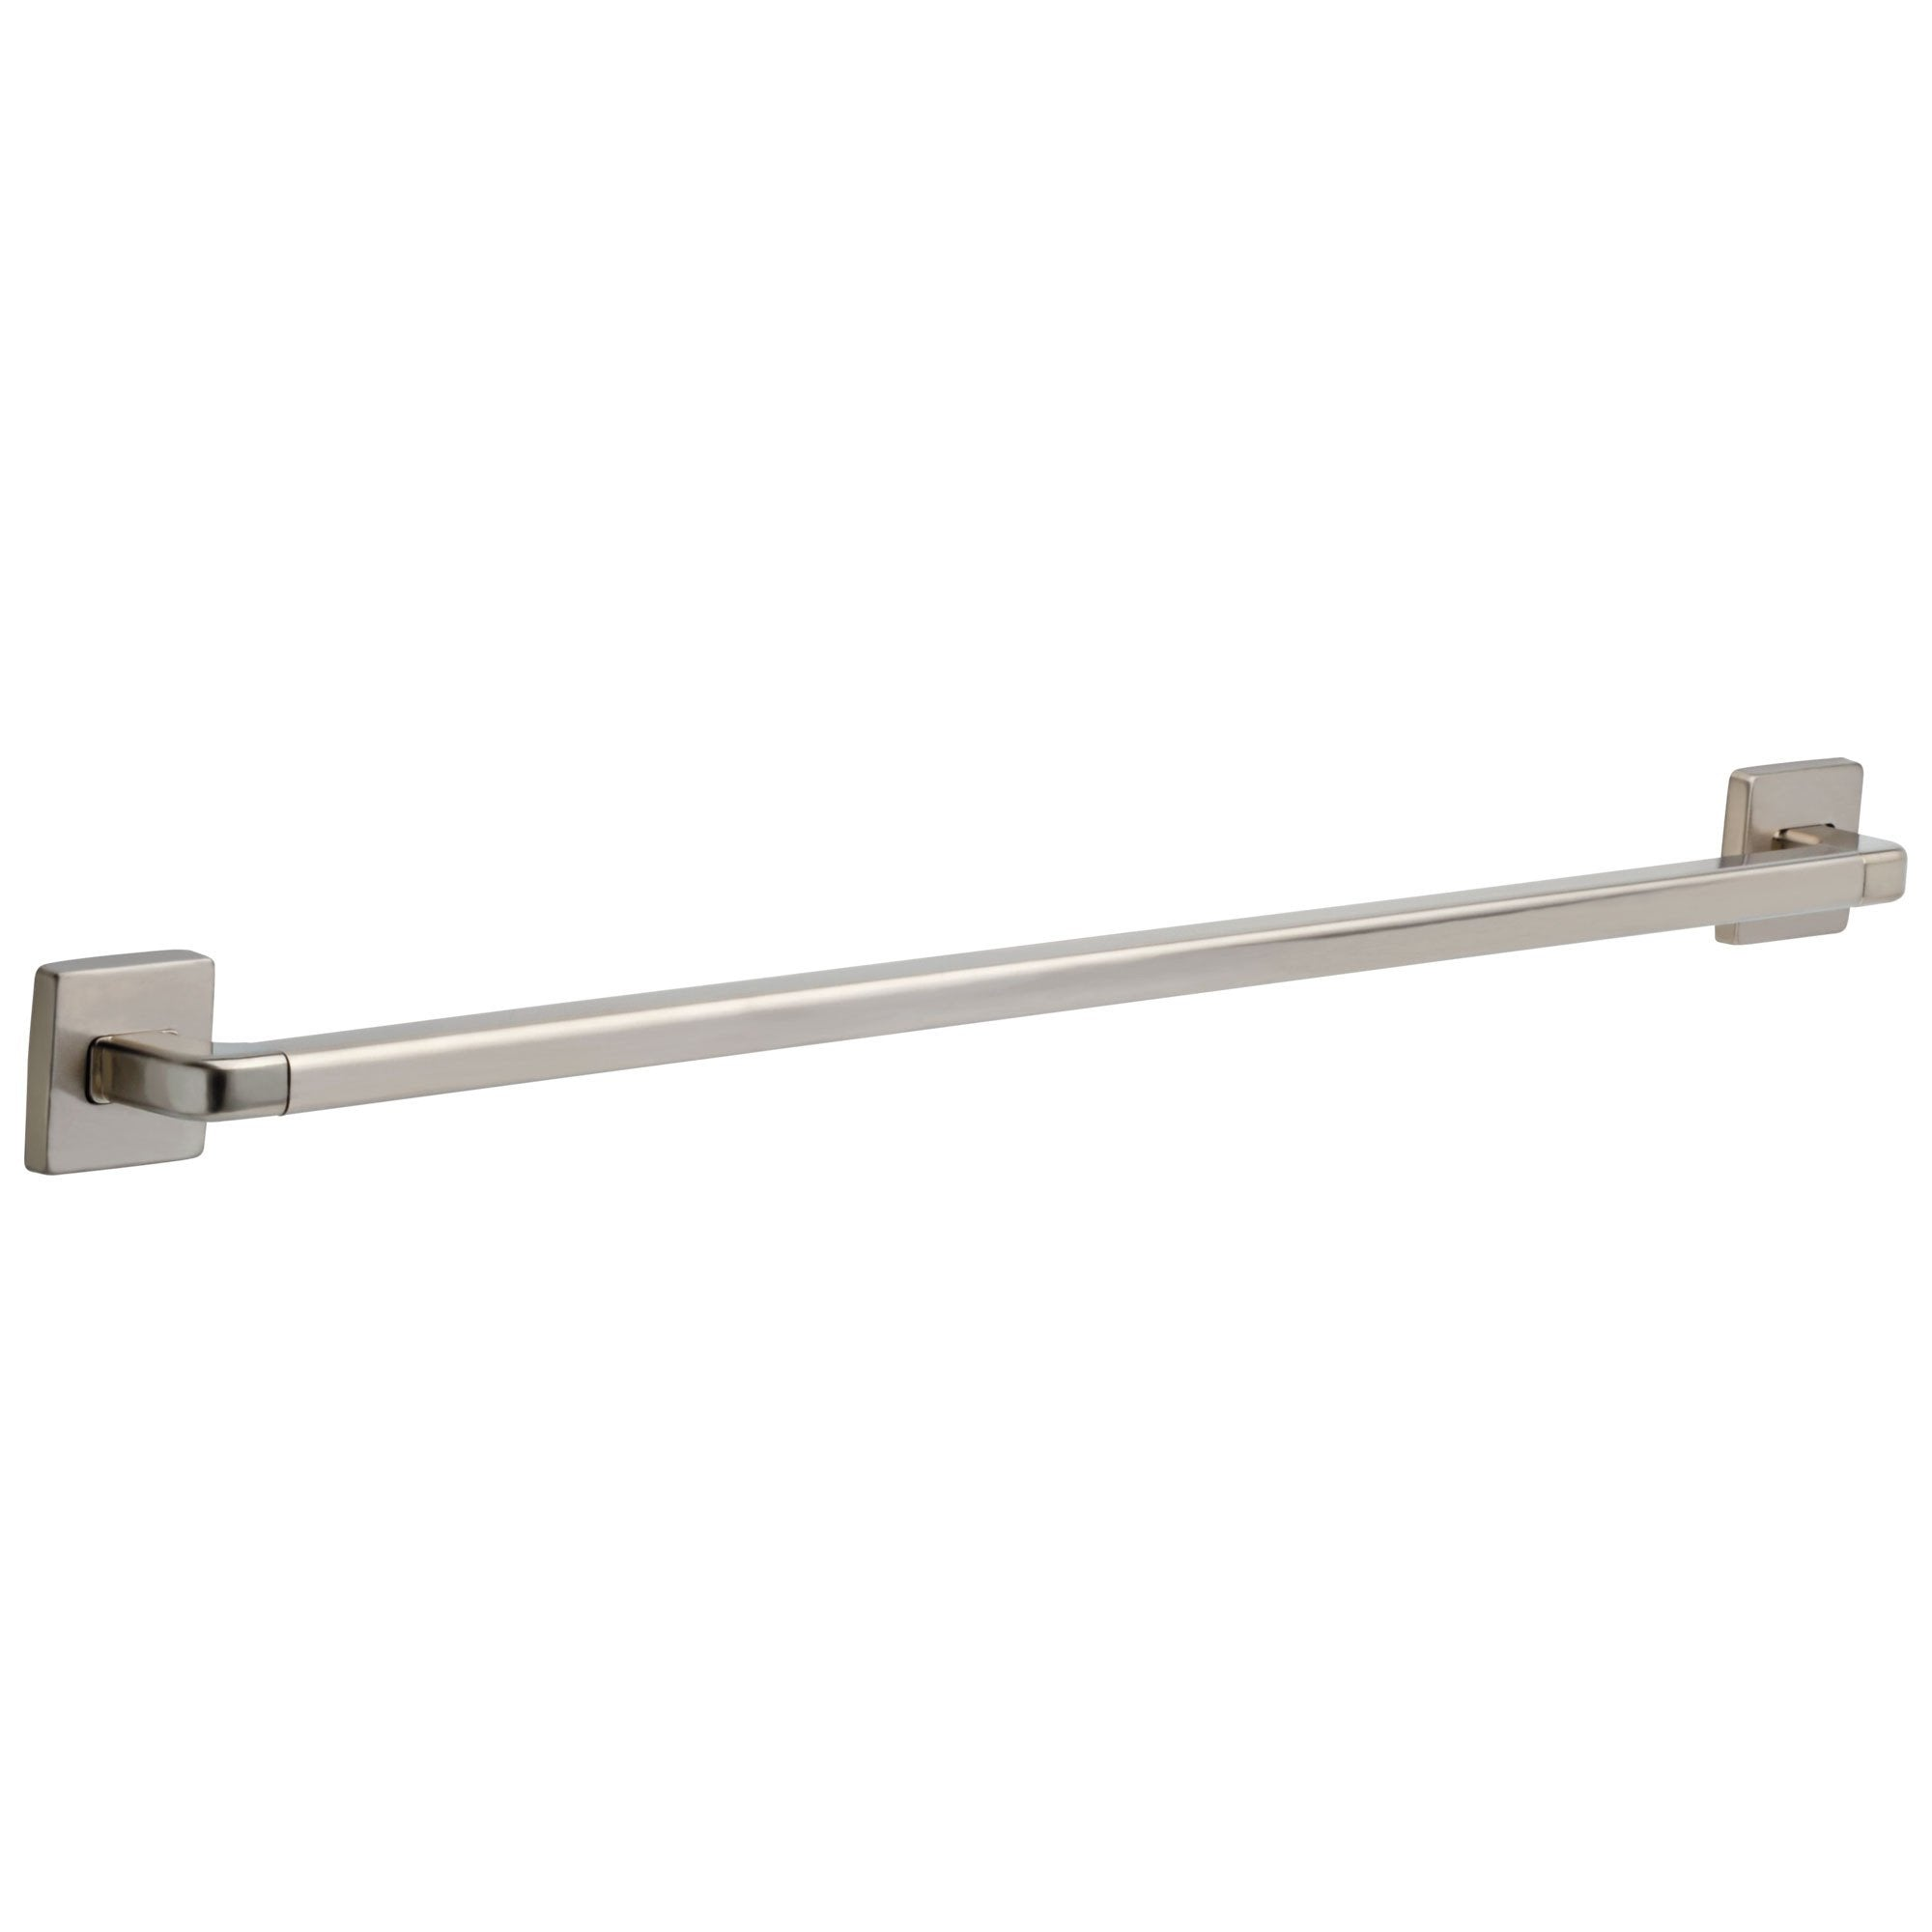 "Delta Bath Safety Collection Stainless Steel Finish Angular Modern Decorative Wall Mount 36"" Long ADA Grab Bar D41936SS"